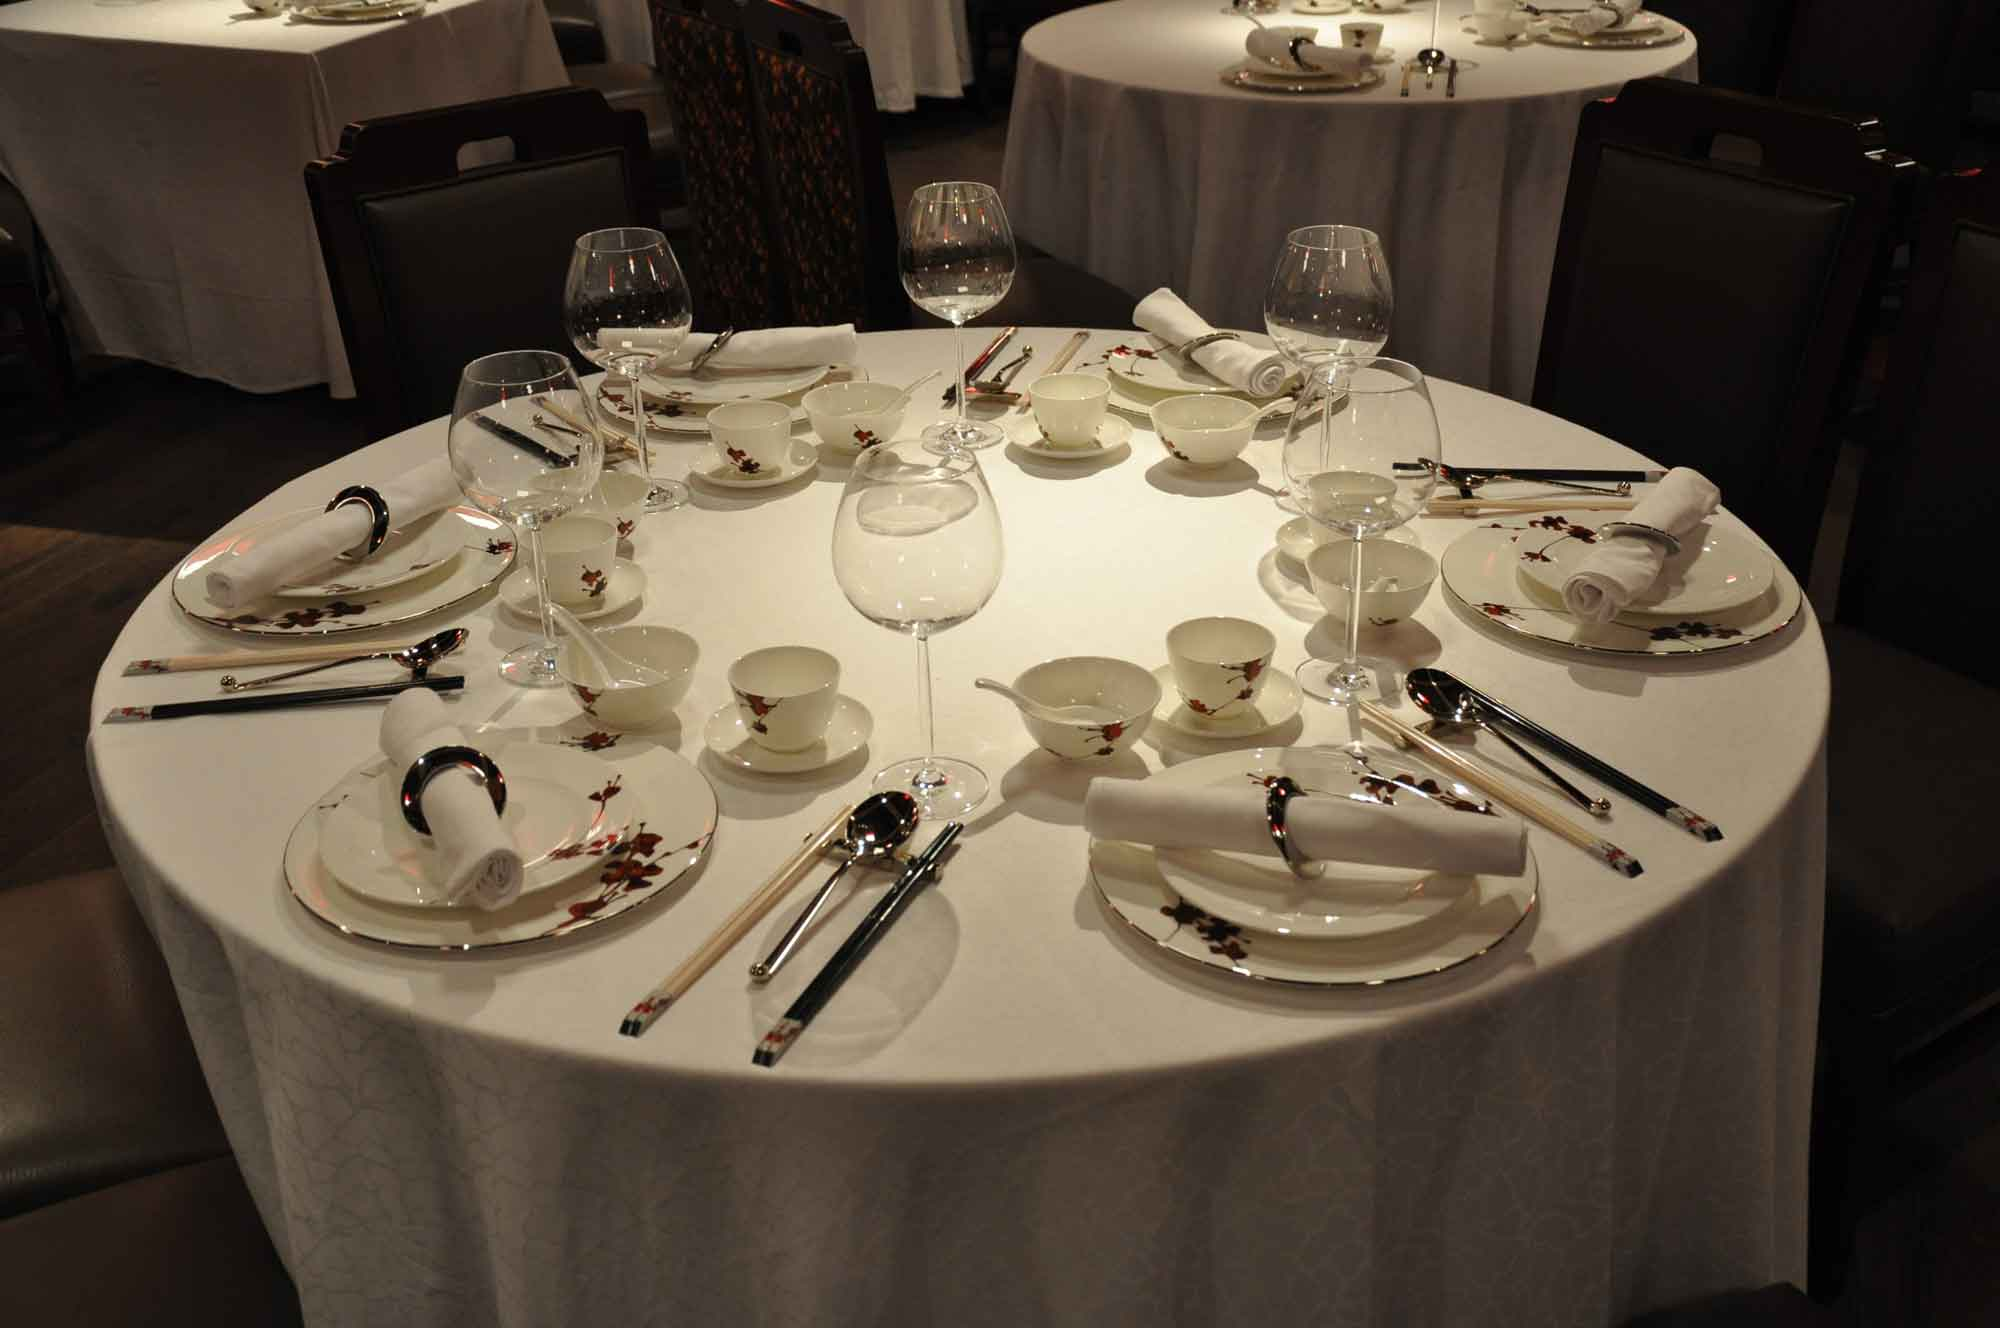 Dynasty 8 Macau table and tableware